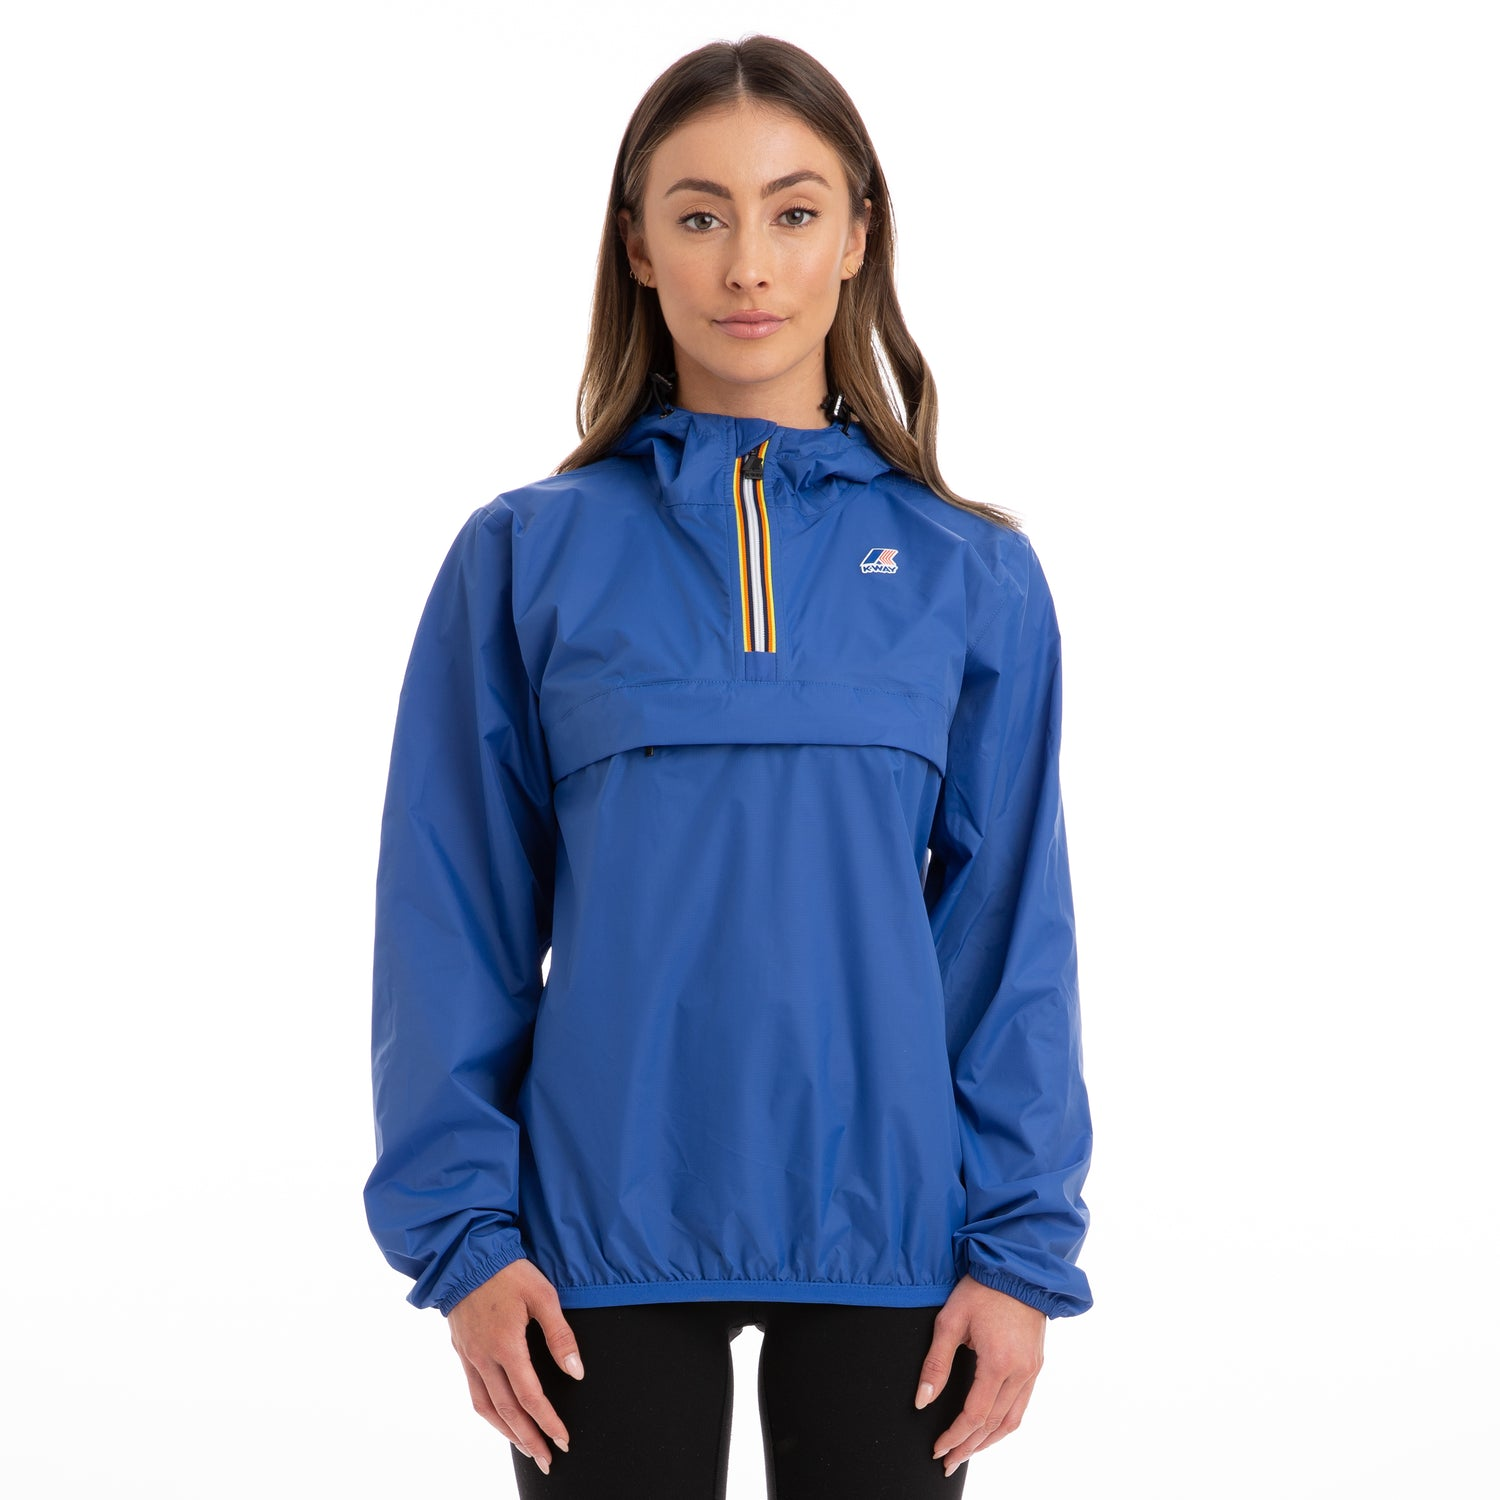 K-Way Women's Le Vrai 3.0 Leon Half Zip Jacket Jacket Blue Royal